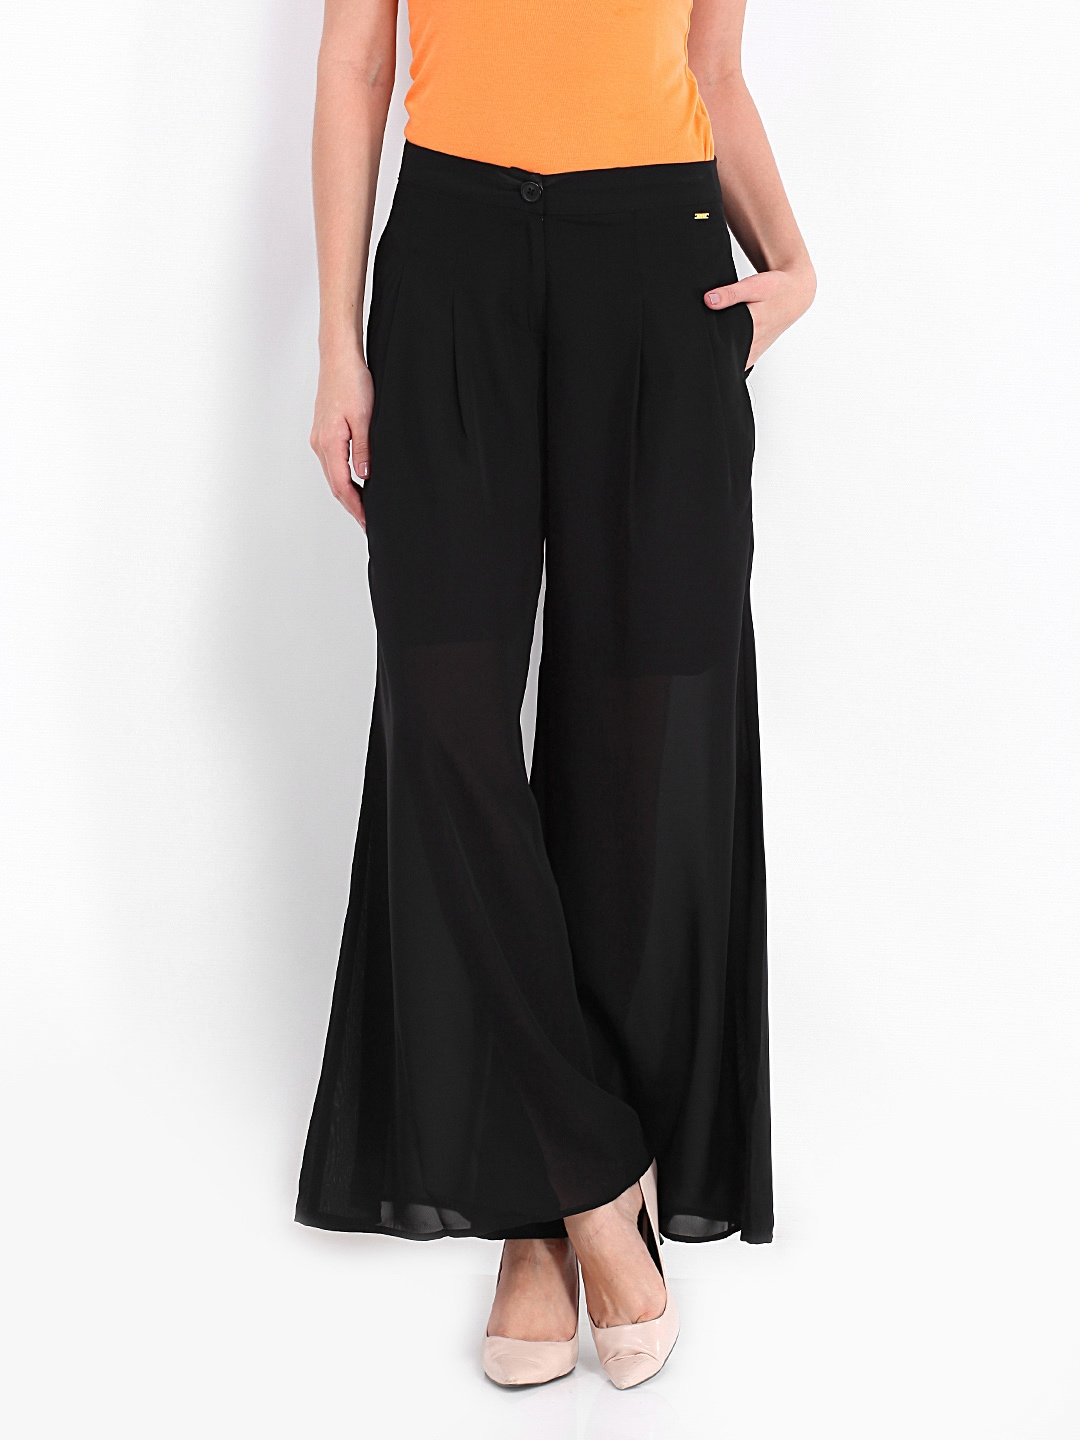 Find great deals on eBay for black palazzo pants. Shop with confidence.